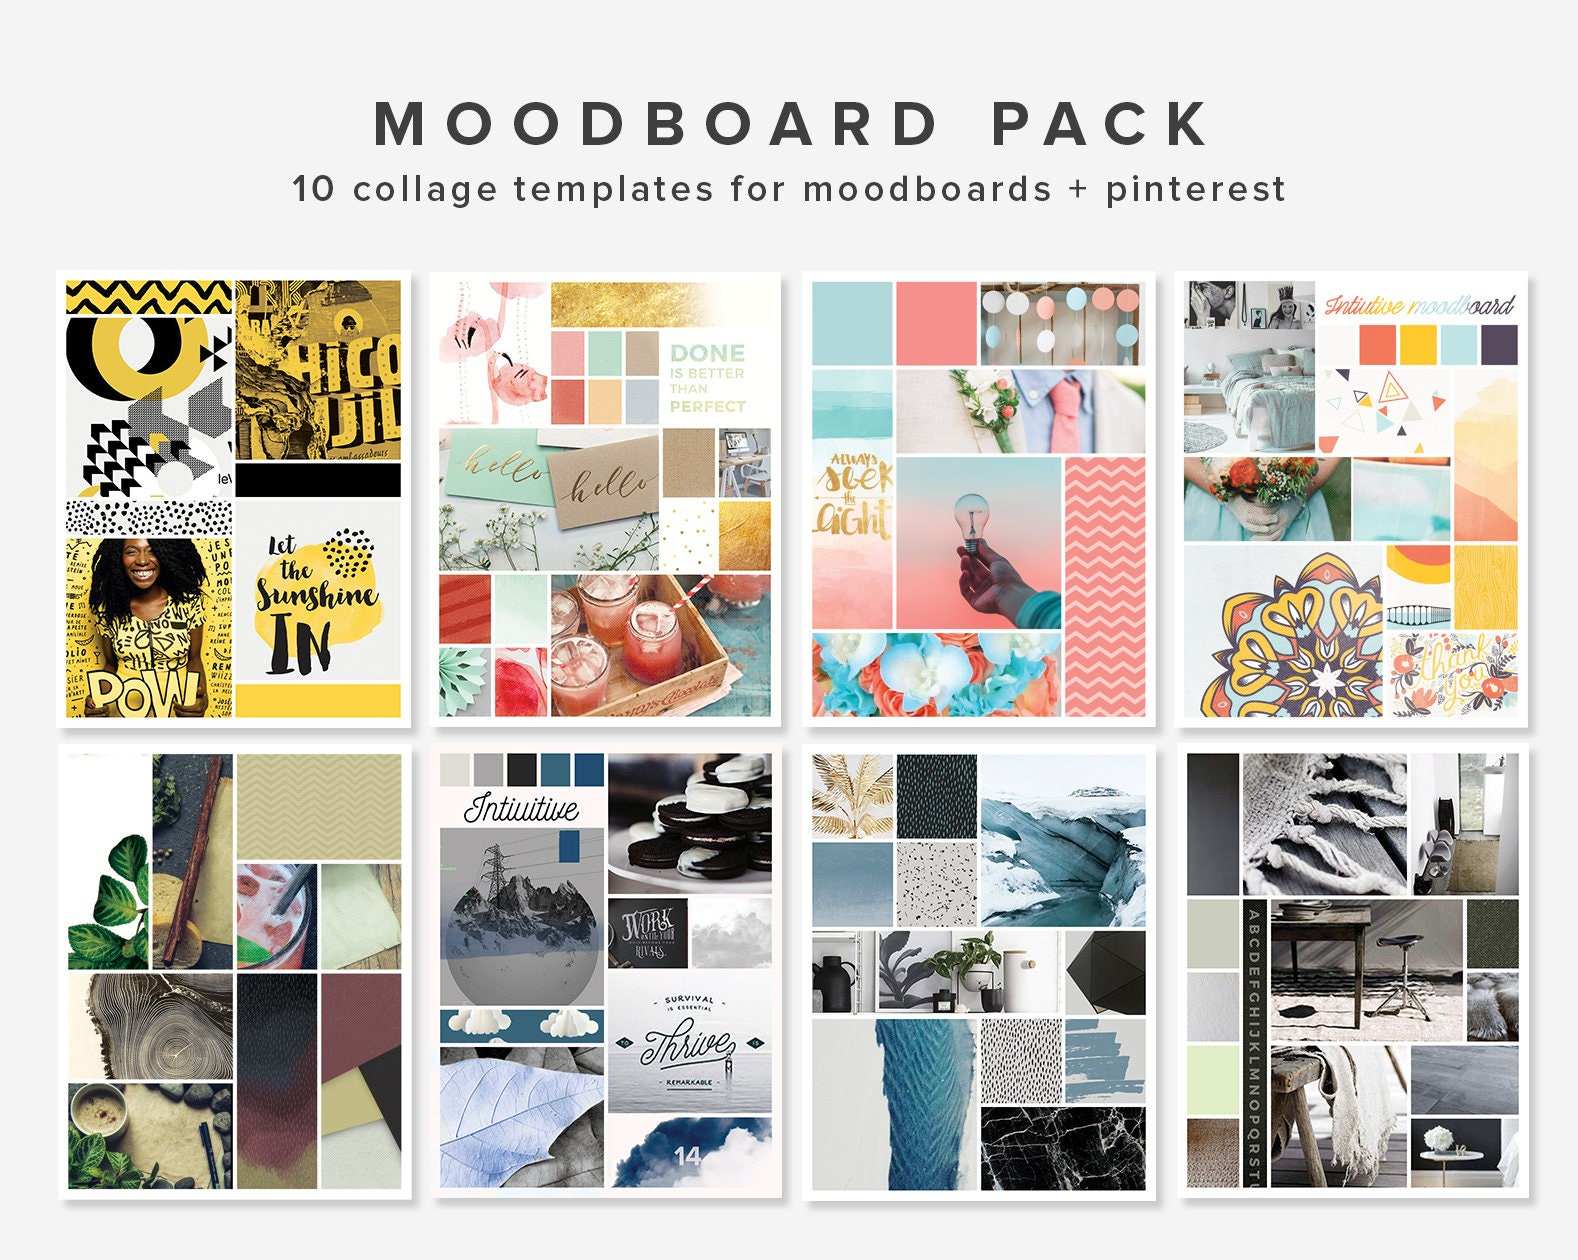 Photoshop Templates: 10 Moodboard Templates Photoshop Templates Blogging